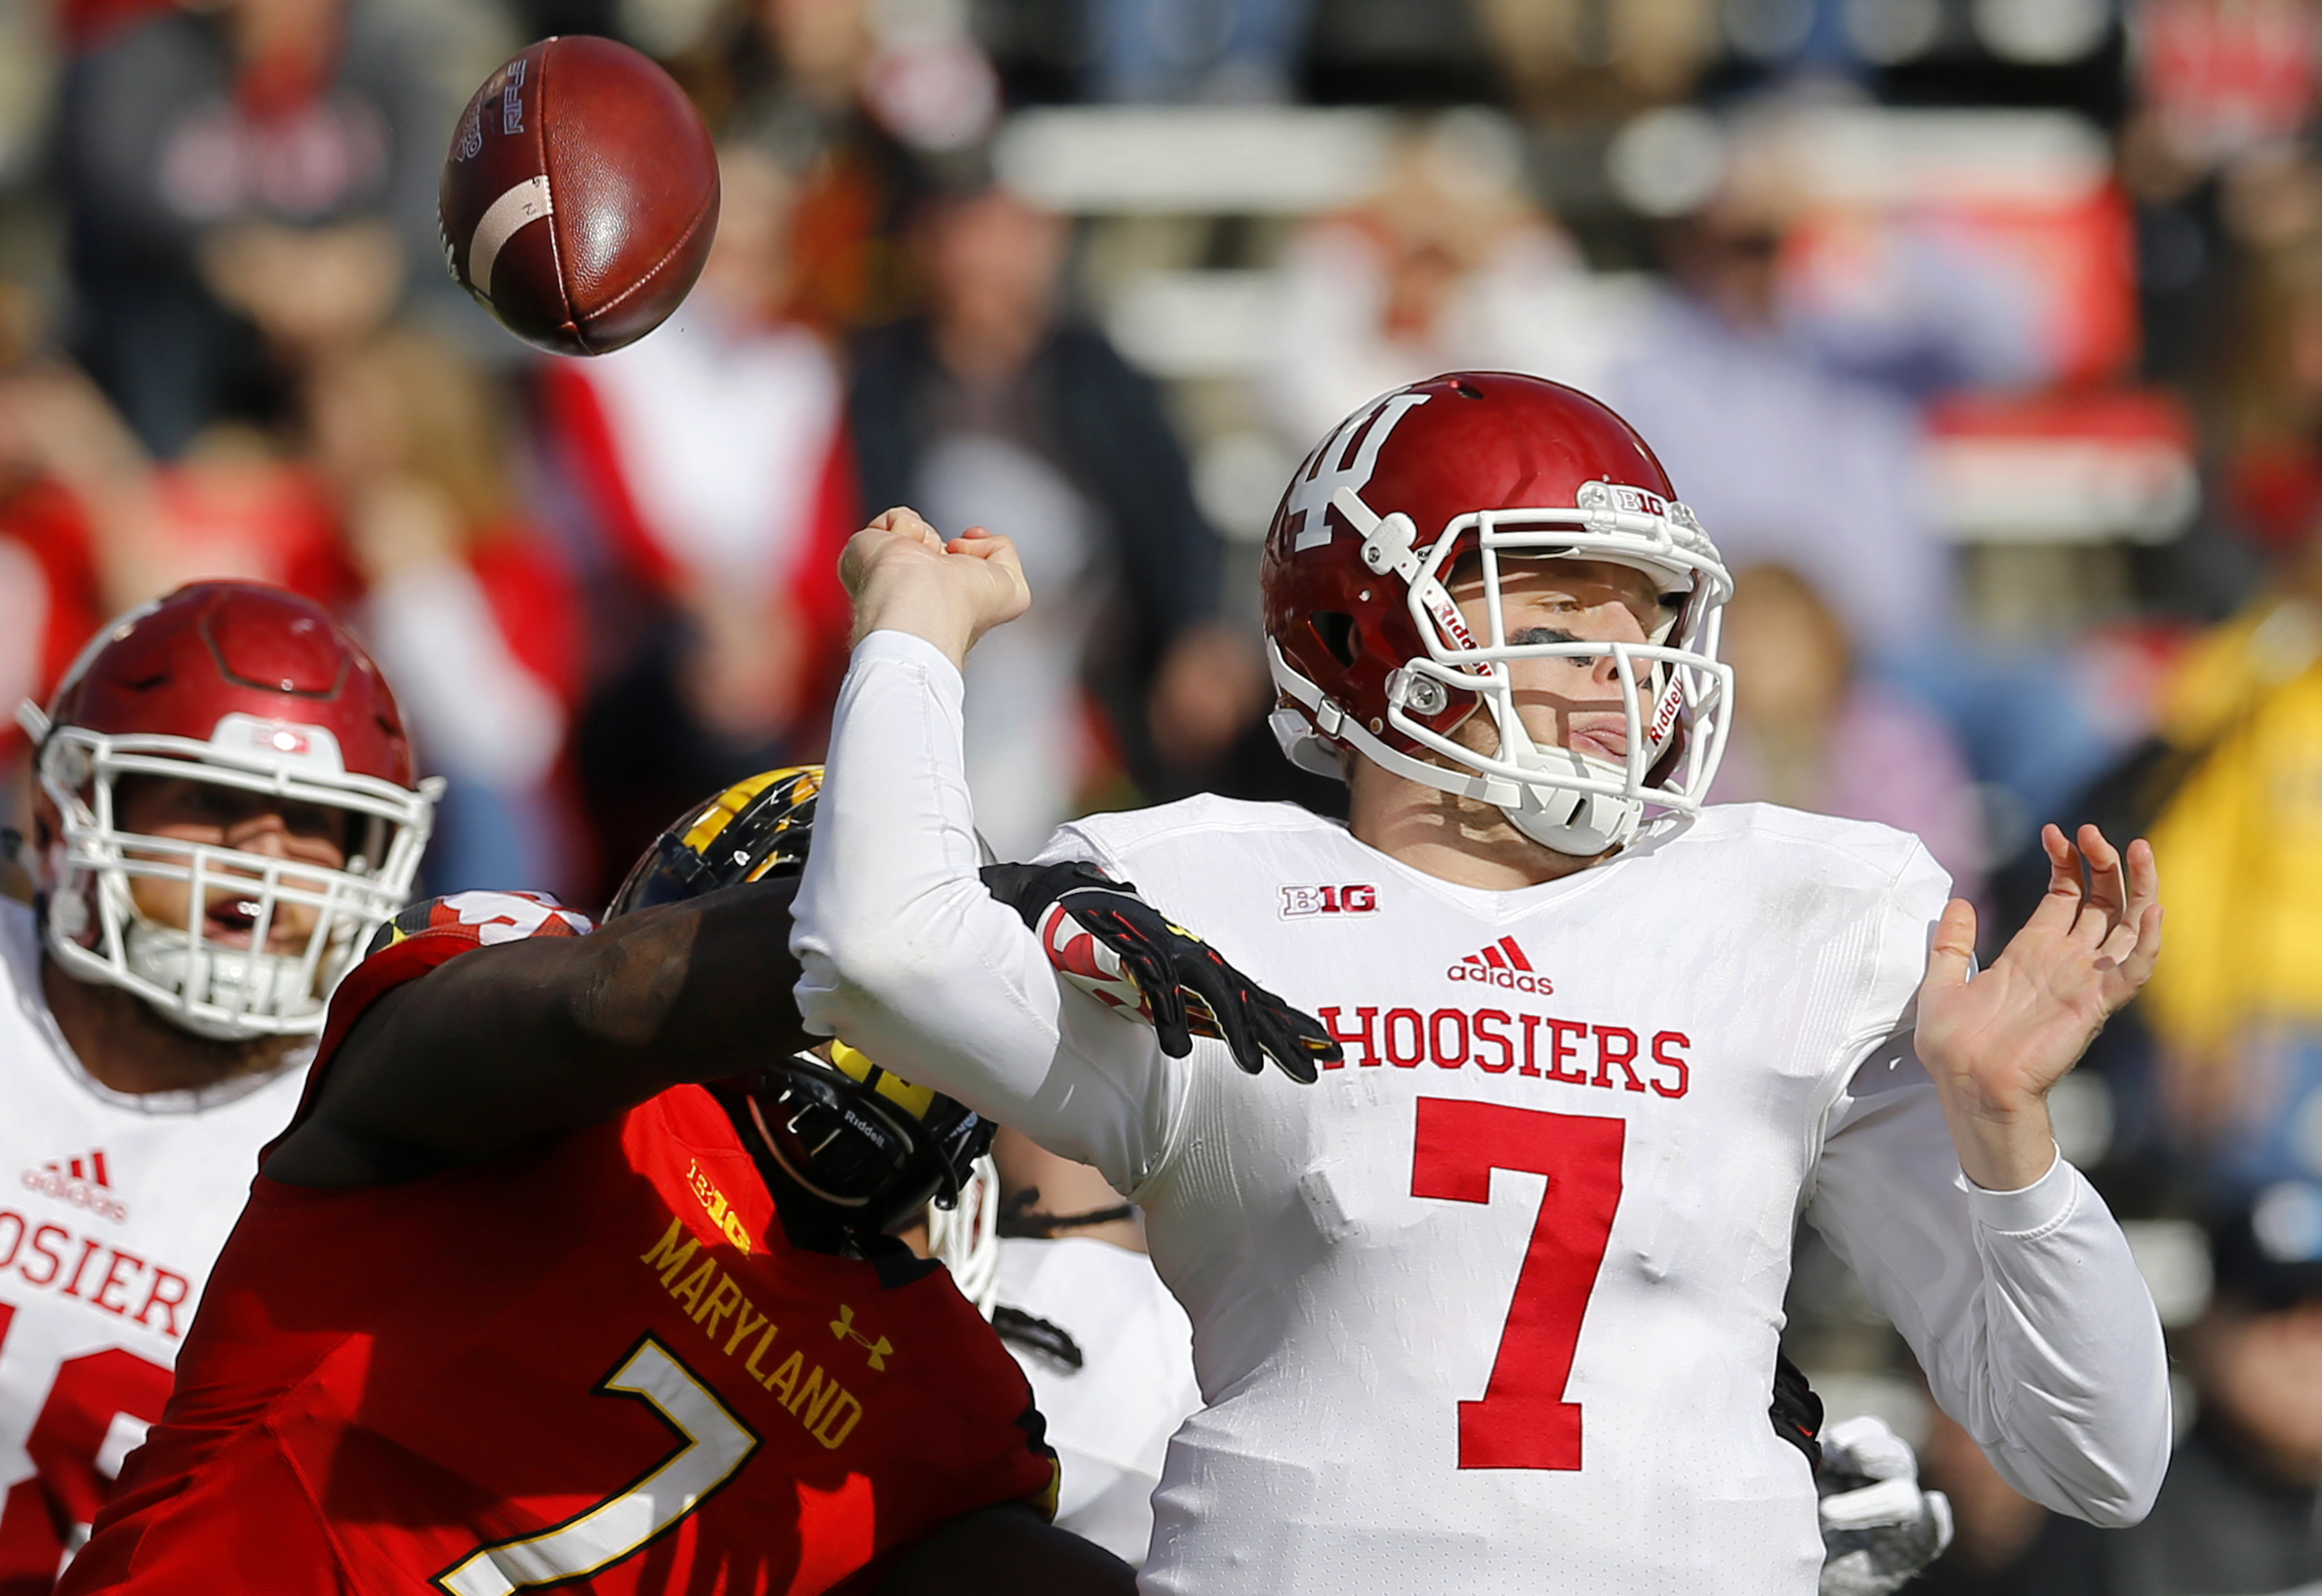 Maryland defensive lineman Yannick Ngakoue, left, strips the ball from Indiana quarterback Nate Sudfeld in the first half of an NCAA college football game, Saturday, Nov. 21, 2015, in College Park, Md. Maryland recovered the ball on the play. (AP Photo/Pa